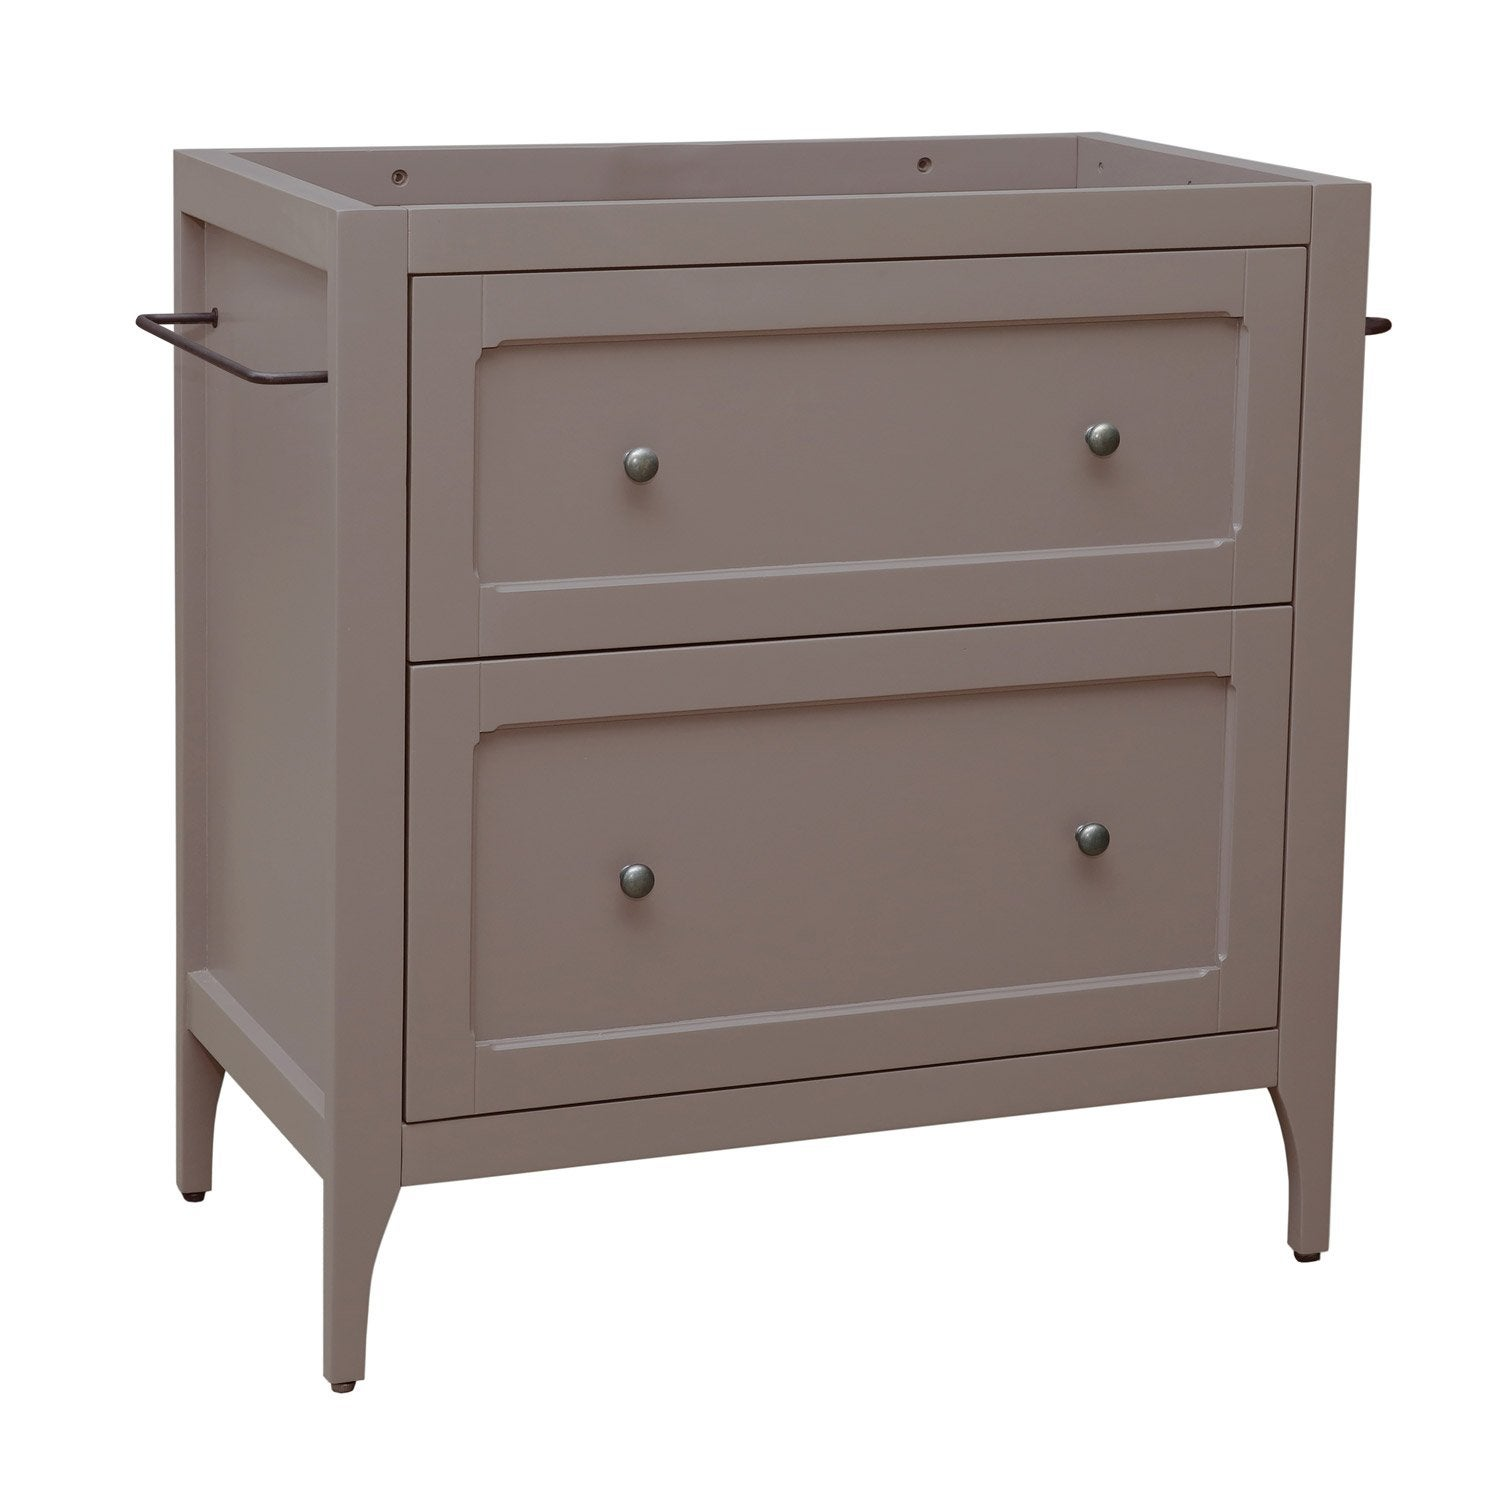 Meuble sous vasque x x cm taupe for Meuble bureau leroy merlin